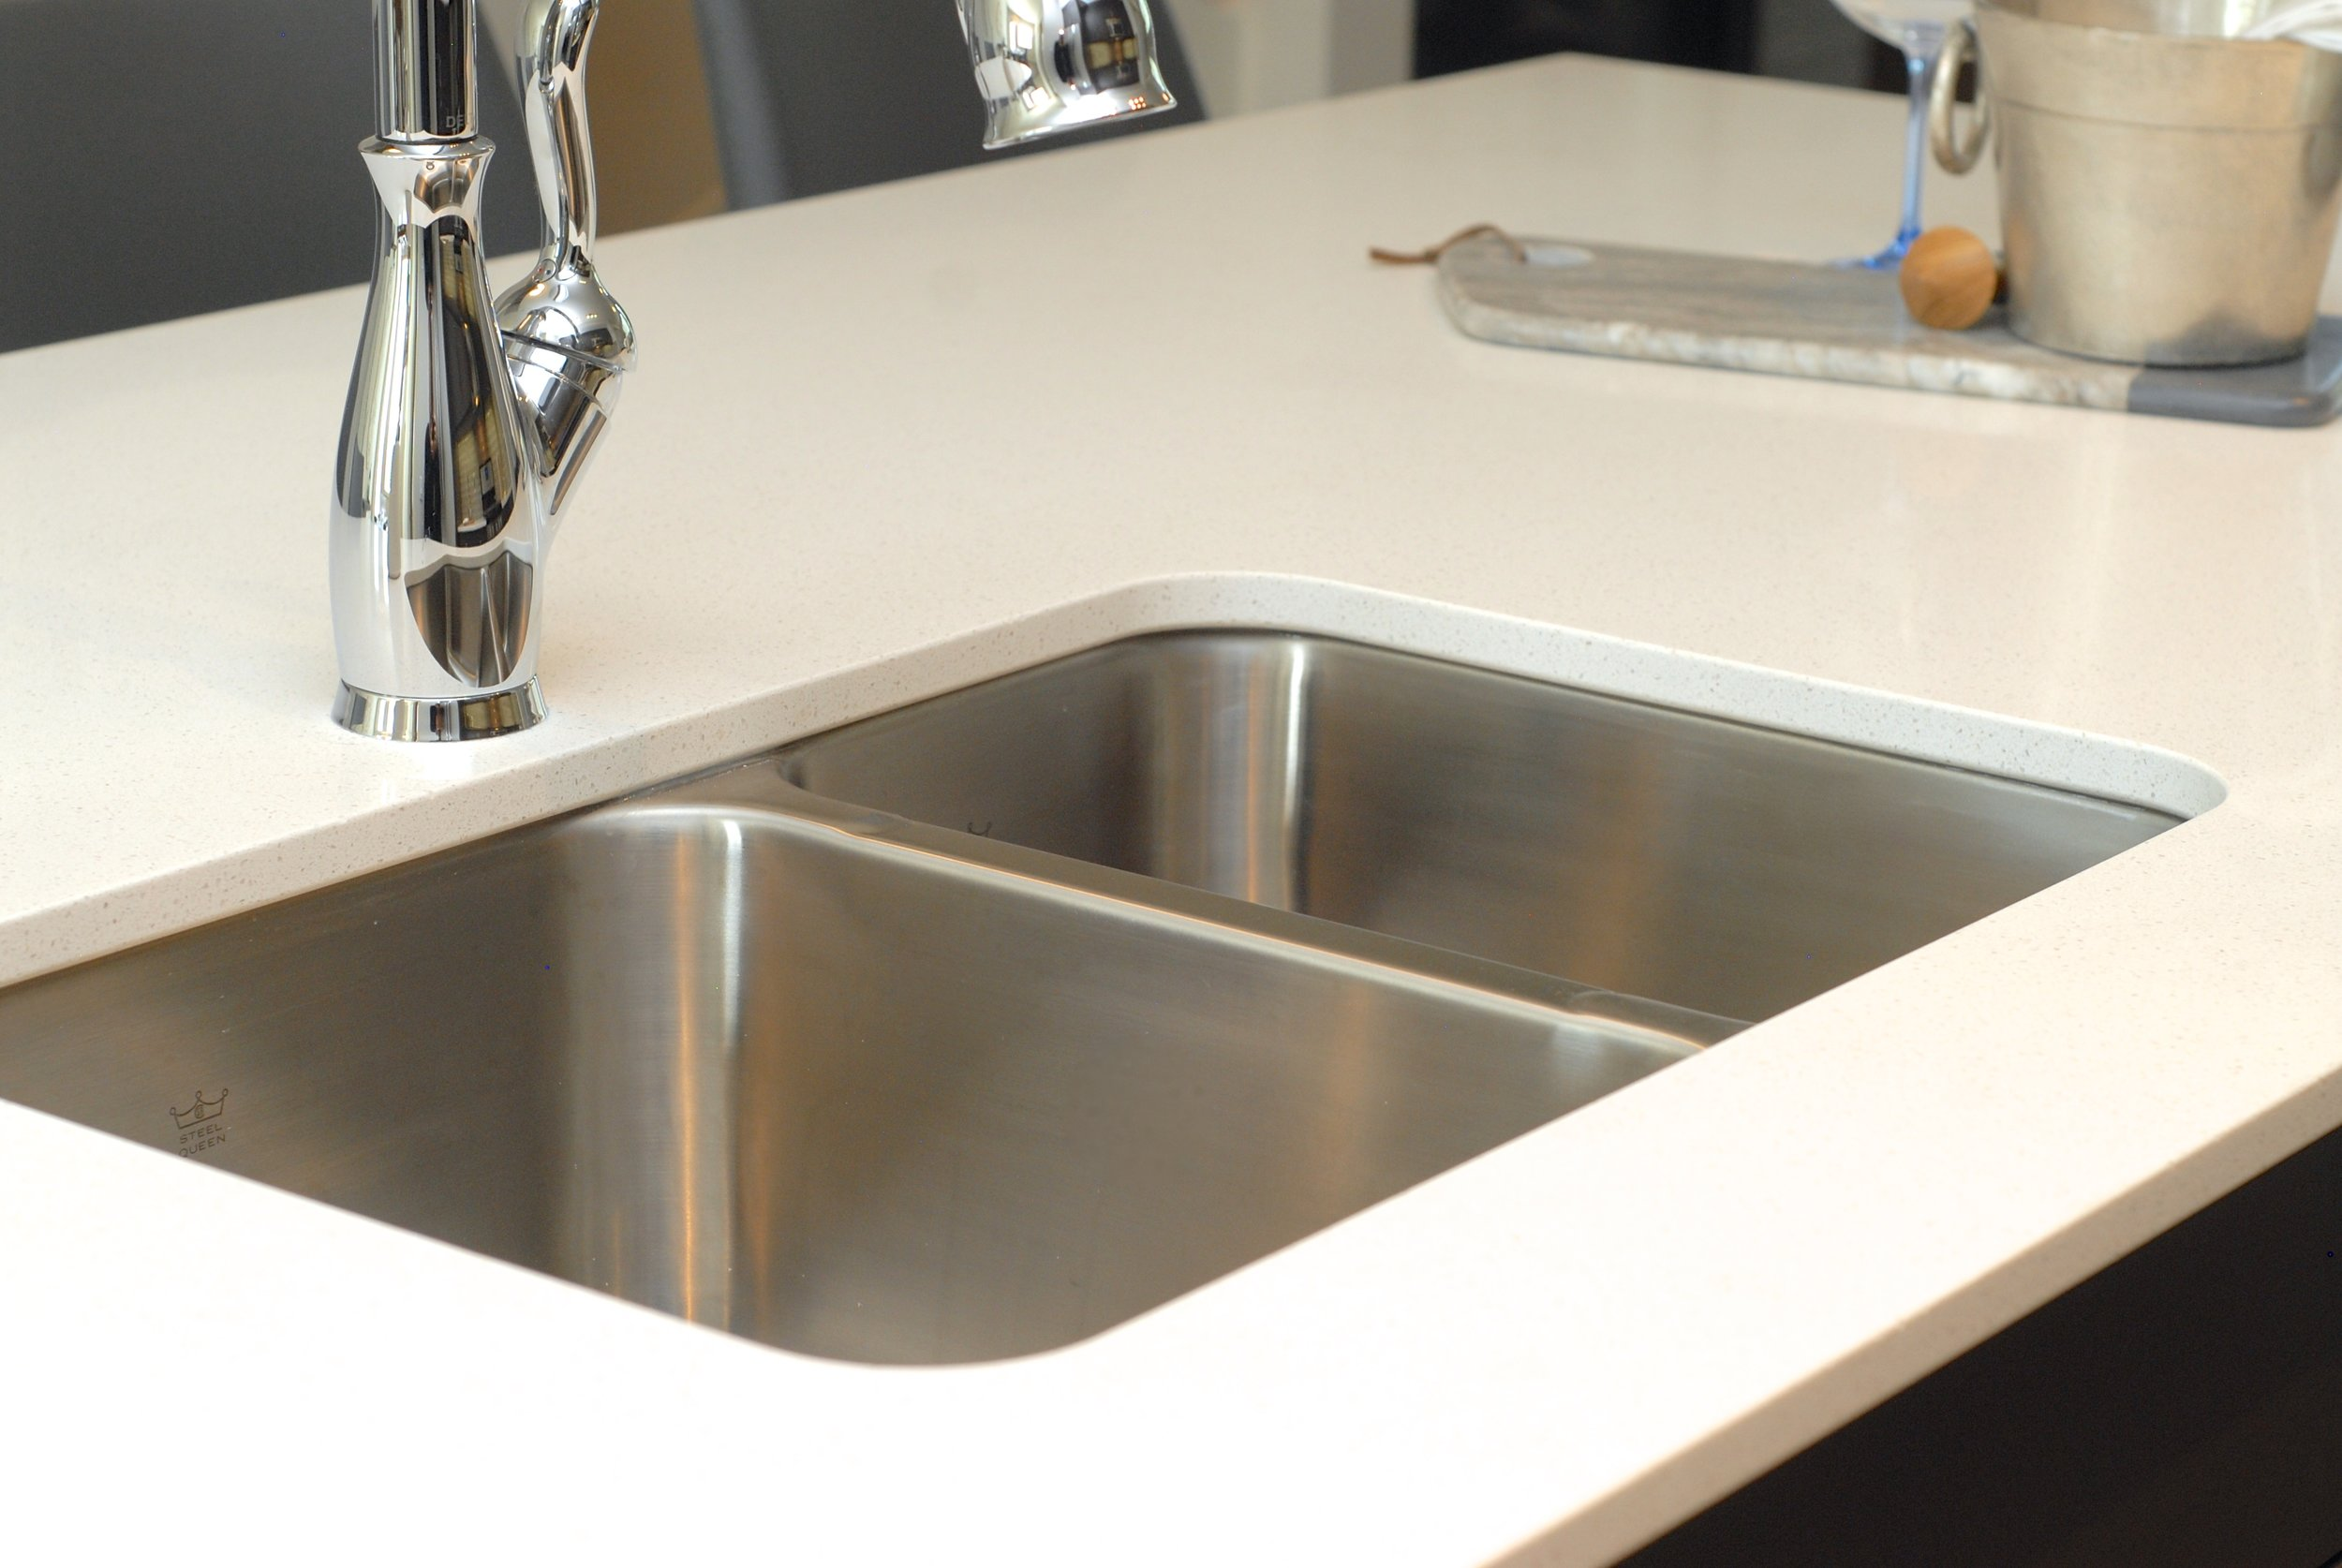 Undermount stainless steel satin finish sink